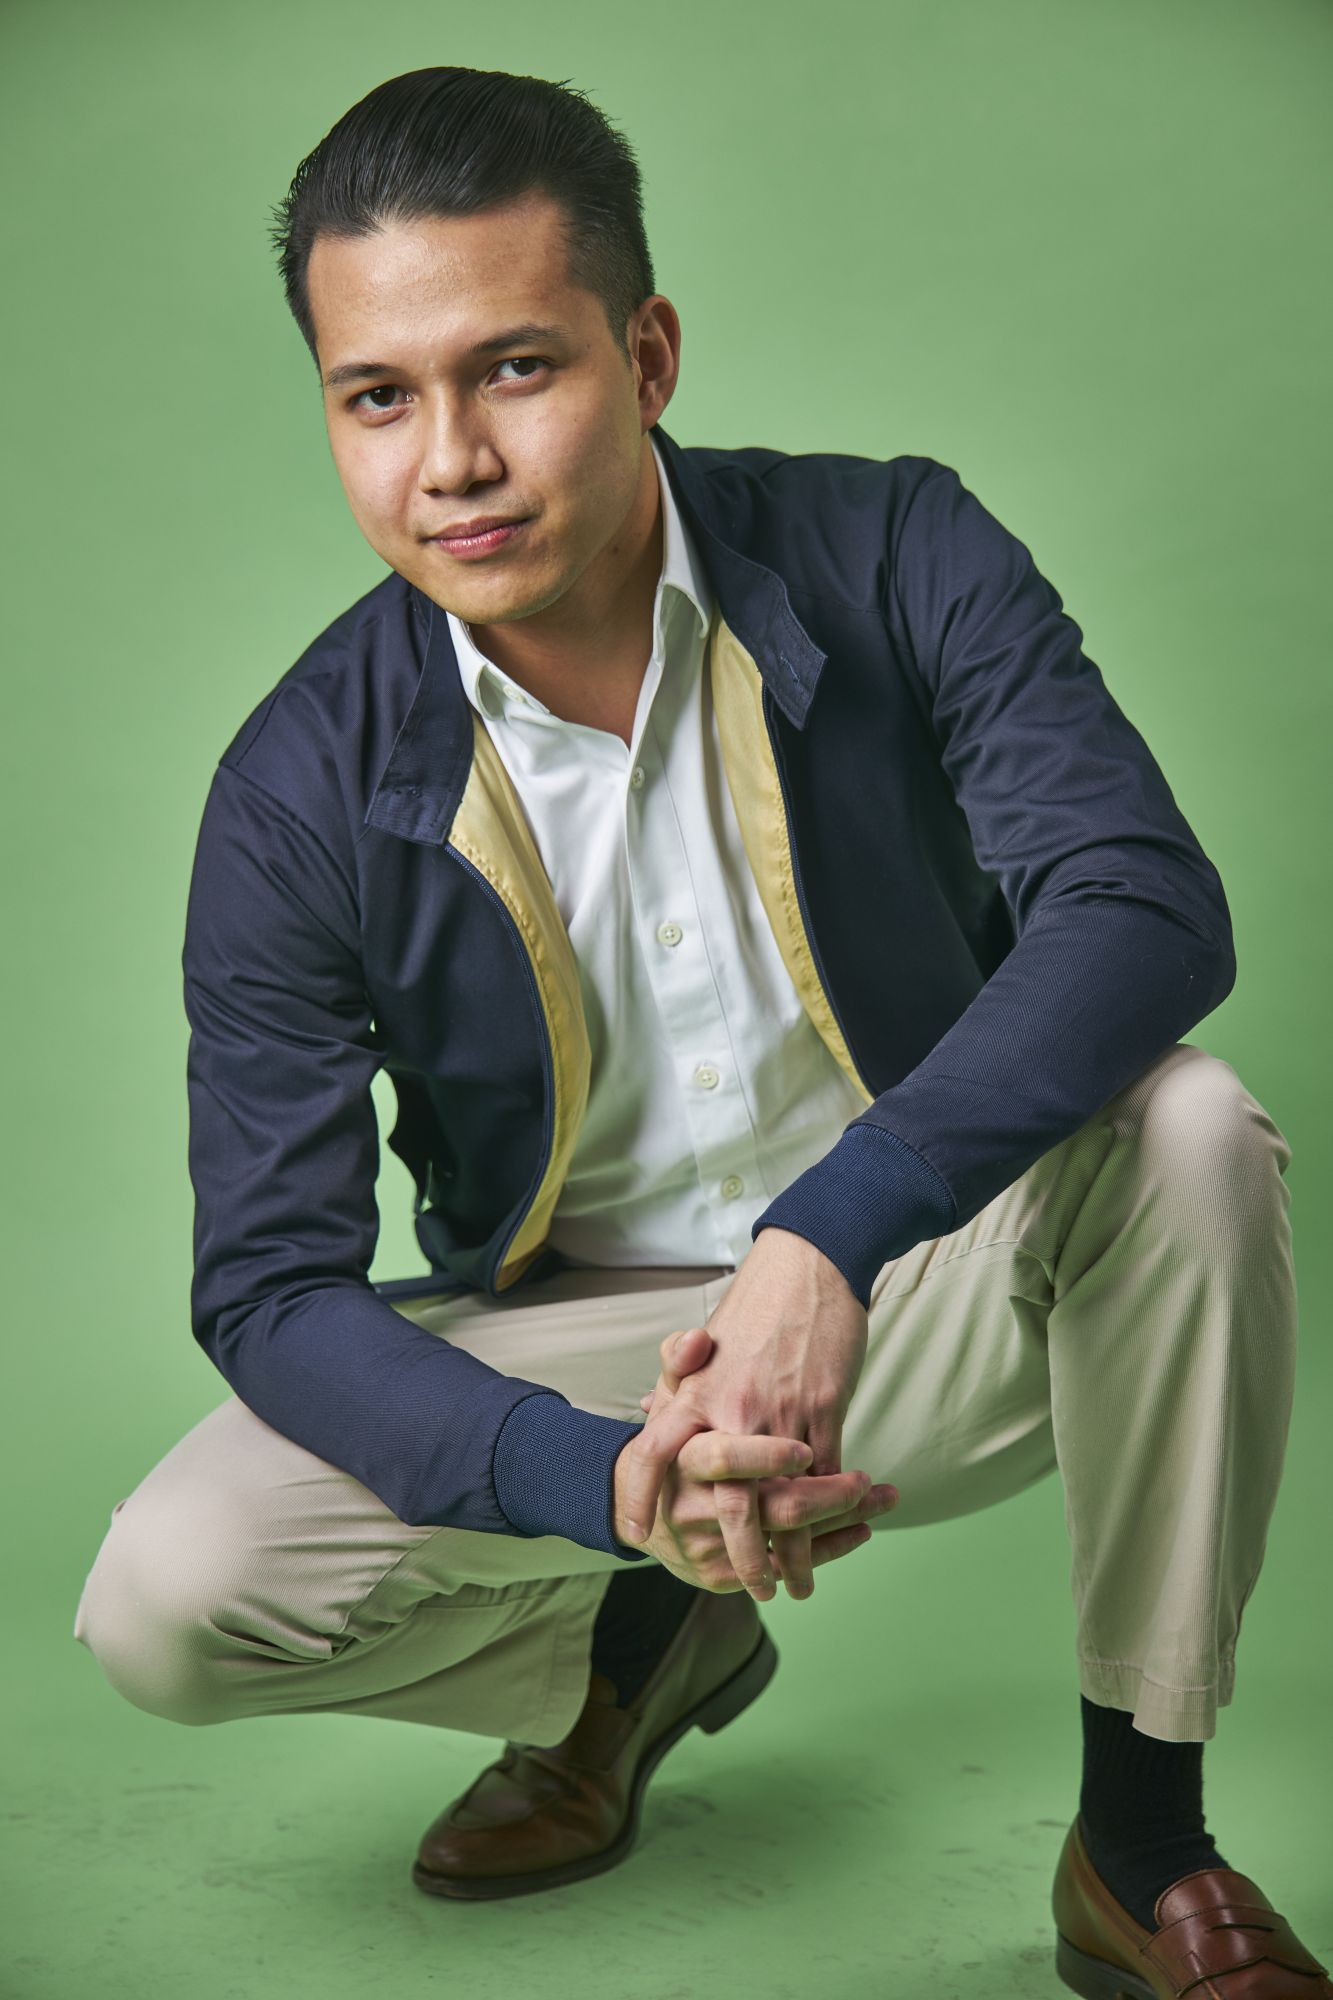 Brian Poe Llamanzares Is A Politician, An Entrepreneur And A CEO. Here's How He Does It